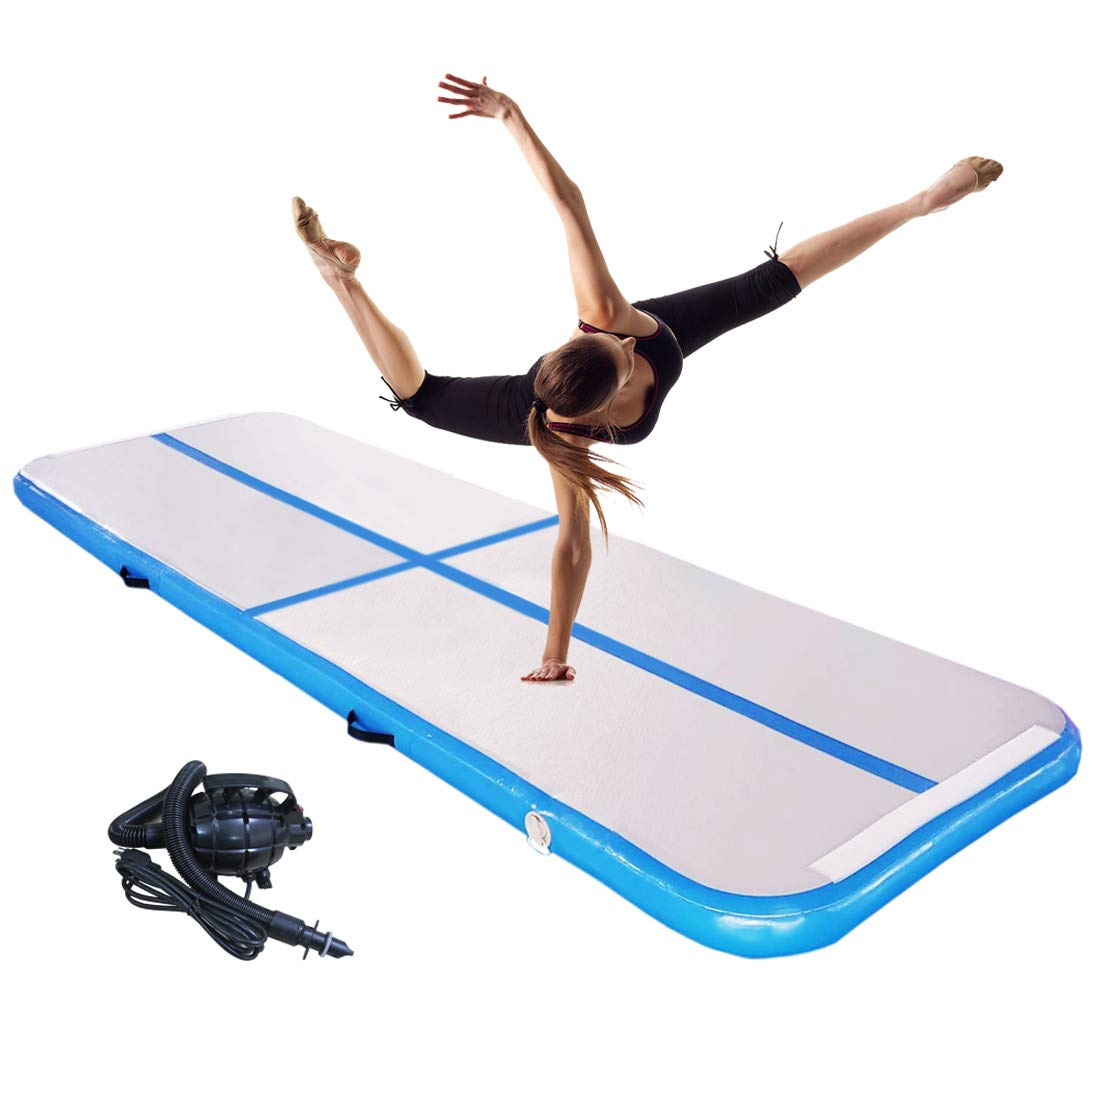 DAMA Inflatable Air Floor Tumbling - Mat Airtrack Mats with Electric Air Pump for Home Use Gymnastic Training Yoga Aerobic Exercises Park Beach and Water